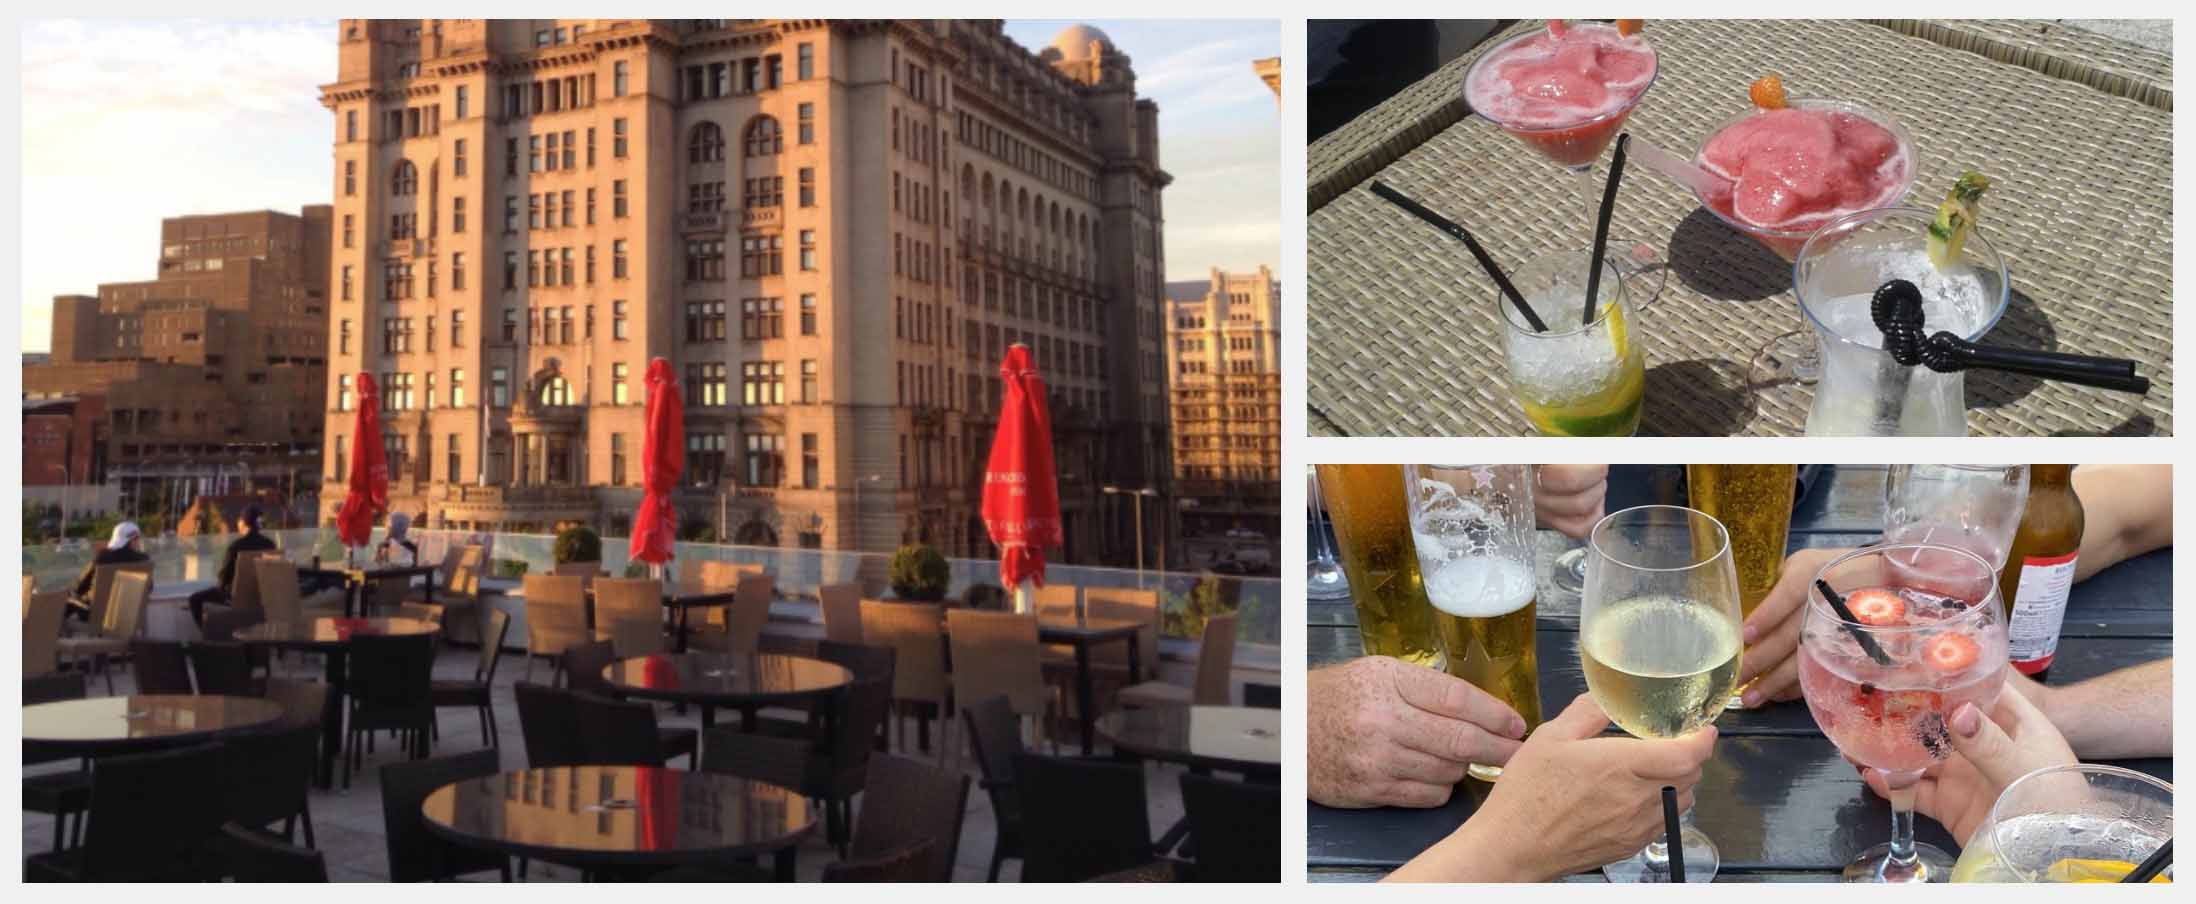 Best Beer Gardens in Liverpool - Matou